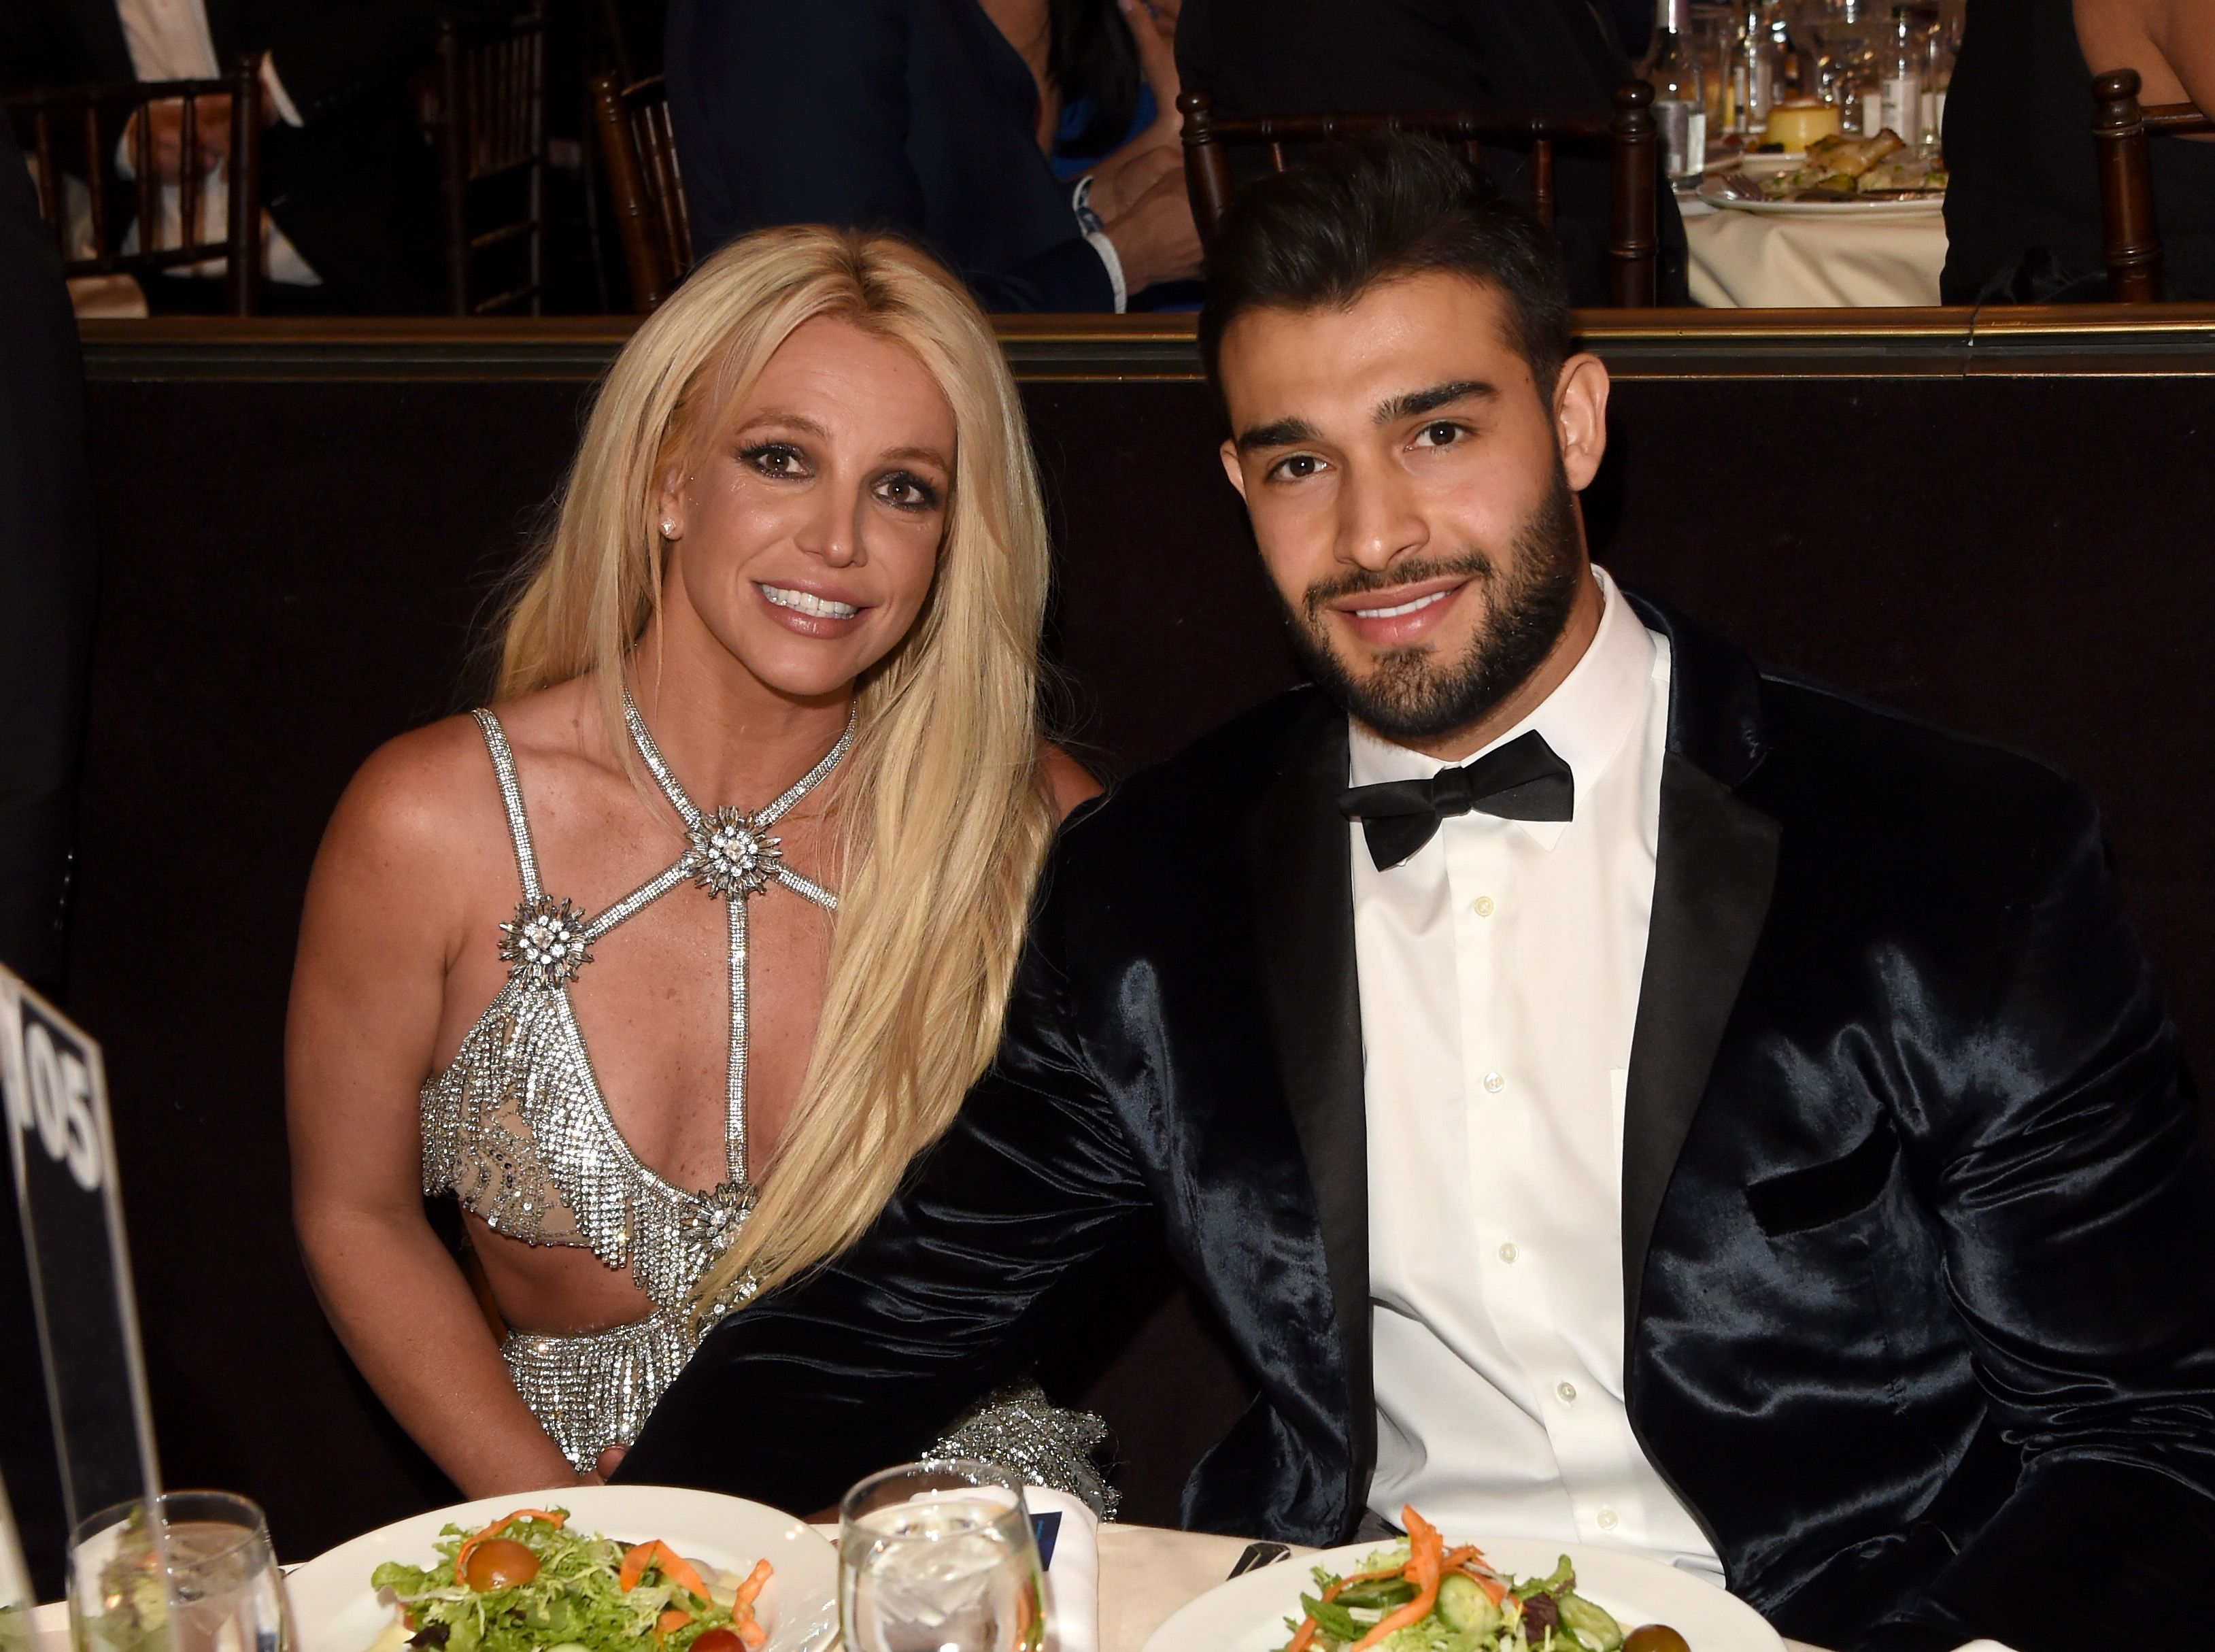 Britney Spears and Sam Asghari at the 29th Annual GLAAD Media Awards at The Beverly Hilton Hotel in Beverly Hills, California   Photo: J. Merritt/Getty Images for GLAAD